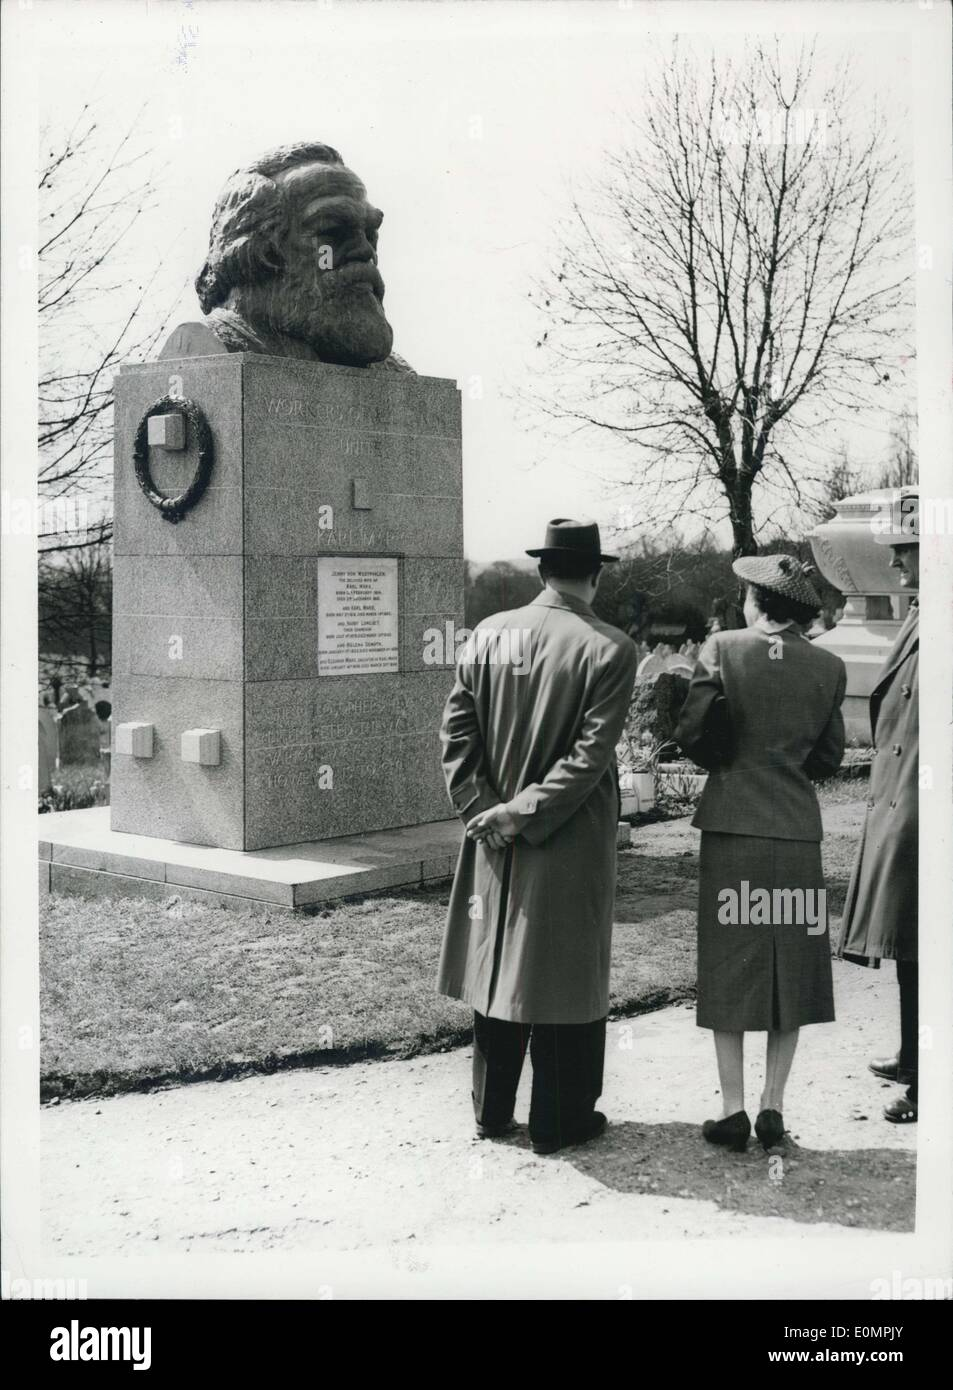 Apr. 16, 1956 - Karl Marx statue defaced-and cleaned: The 12ft. high Karl Marx memorial in Highgate Cemetery which was daubed with white paint during the night-has been cleaned. The incident is believed to be in protest of the forthcoming visit to London of the Soviet Leaders. Photo shows Two officials look at the statue after it had been cleaned today. - Stock Image